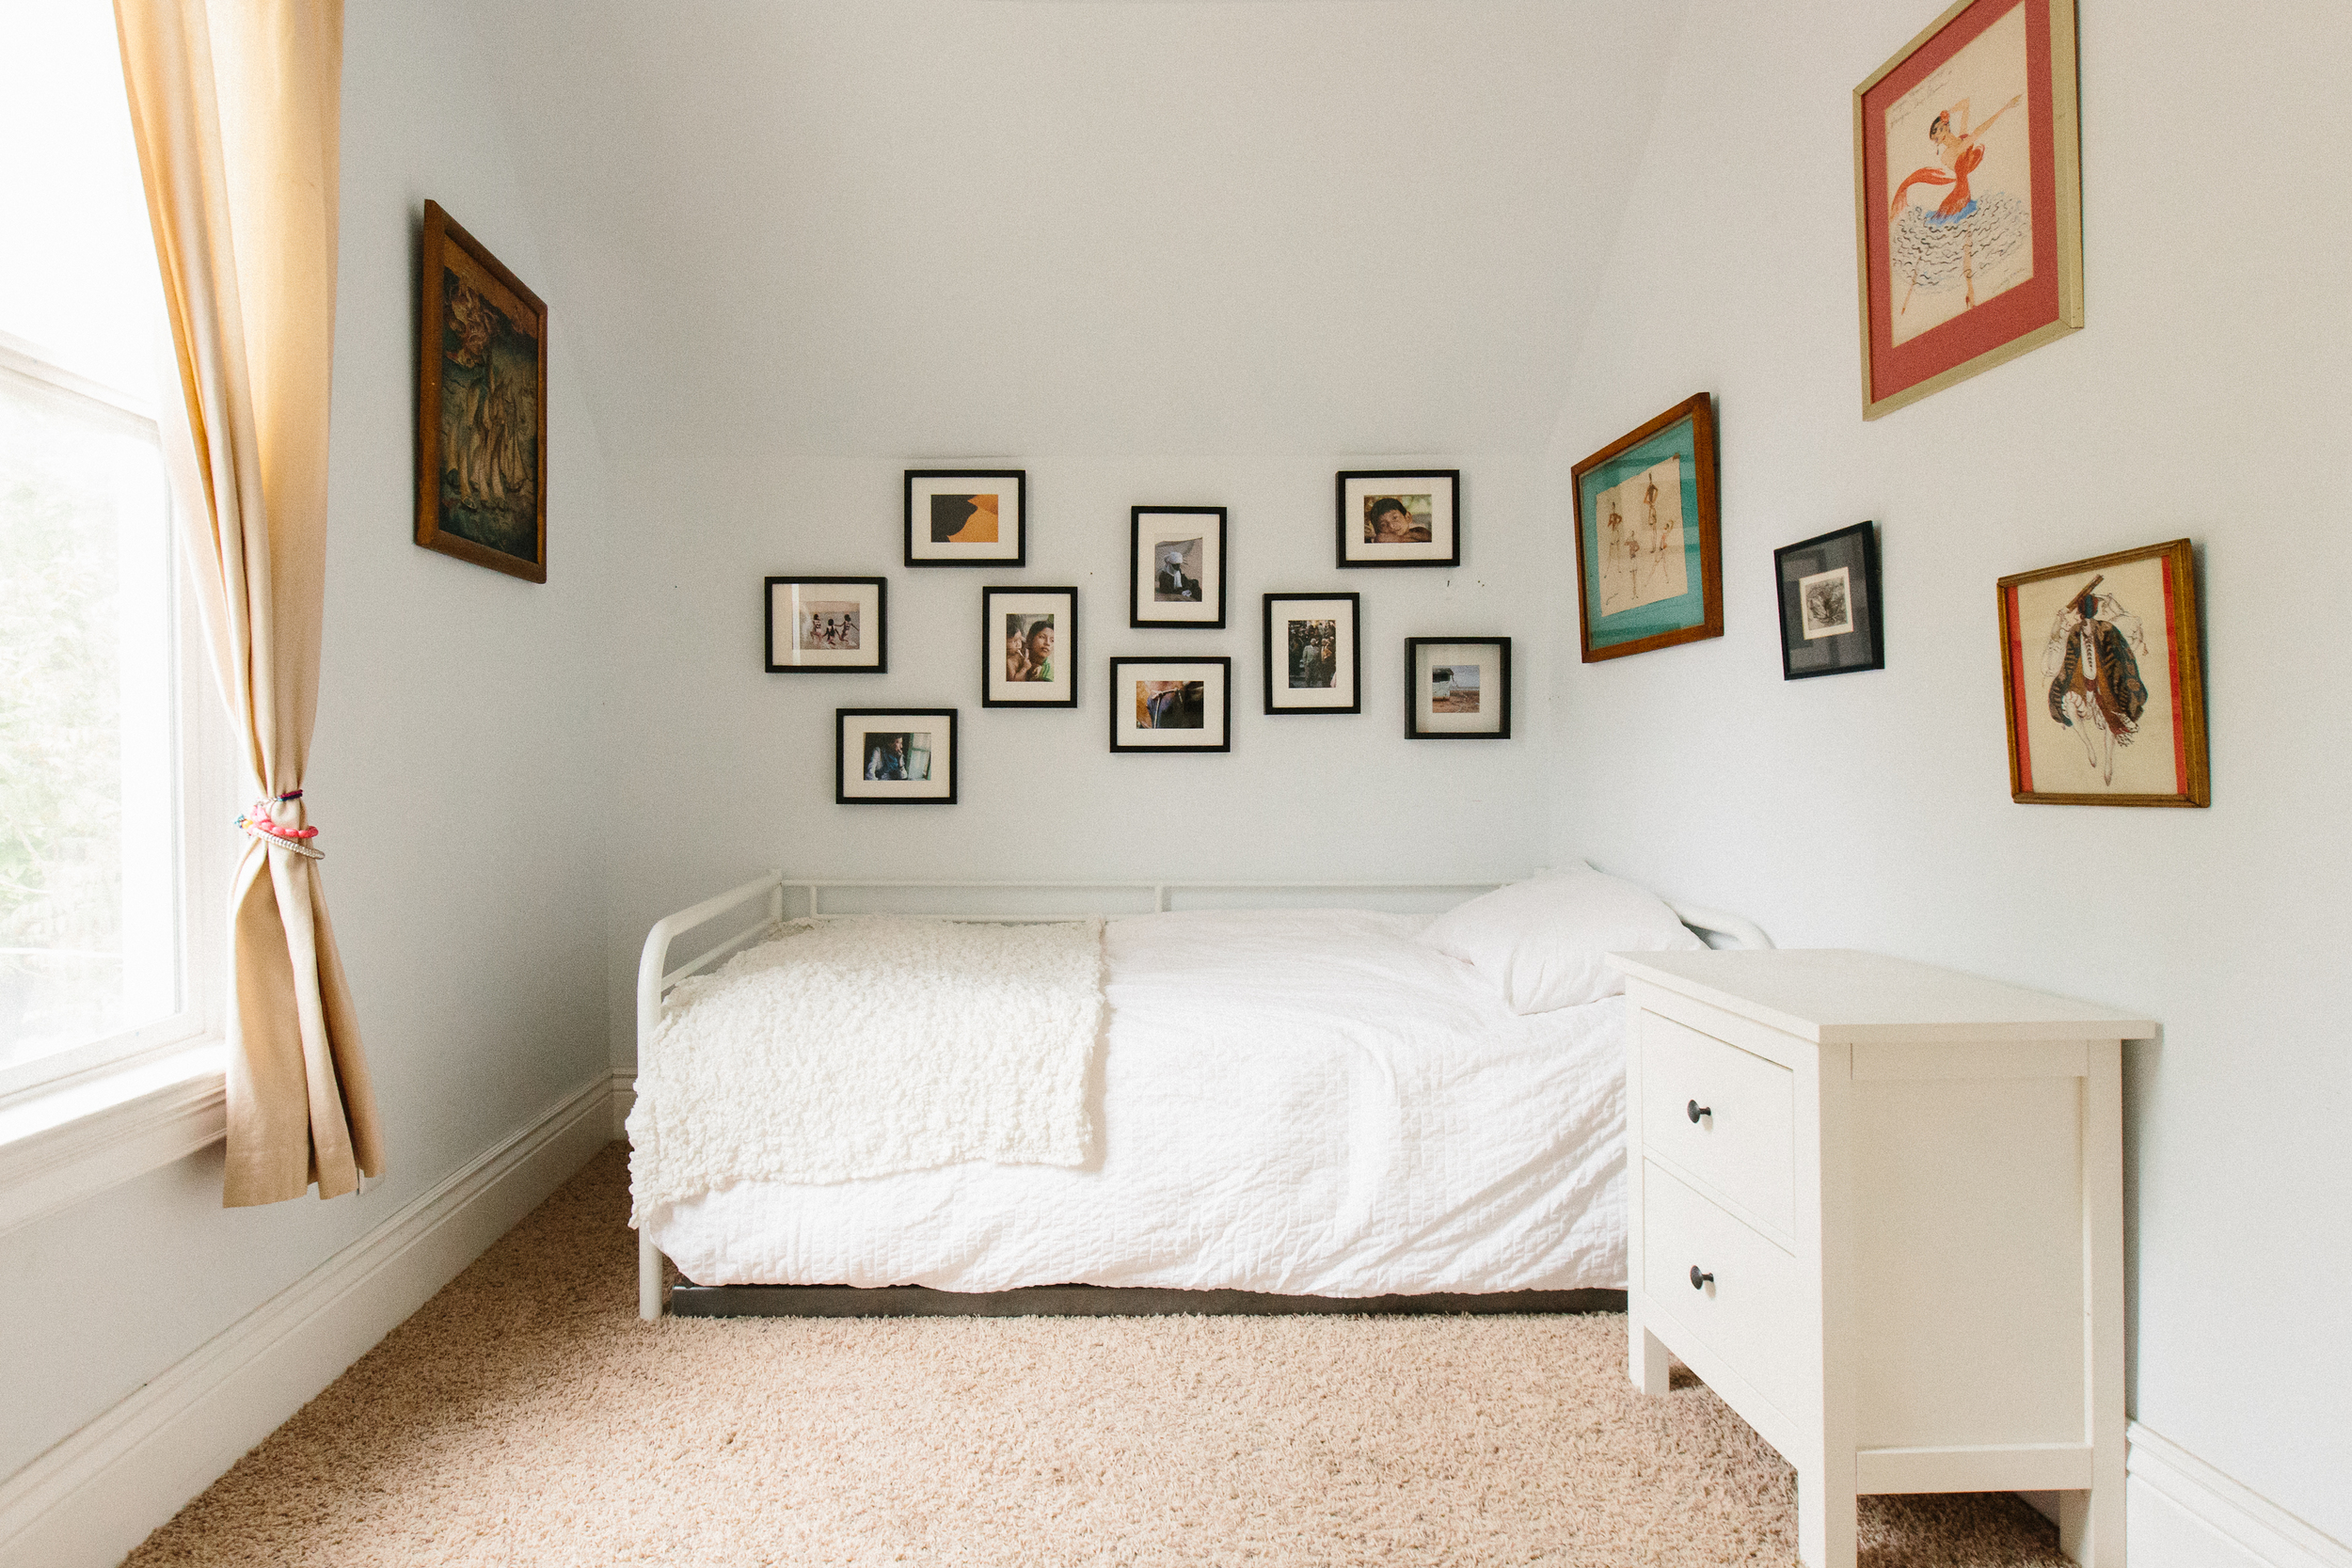 Last but not least, the third bedroom includes a twin bed with a pull-out trundle.